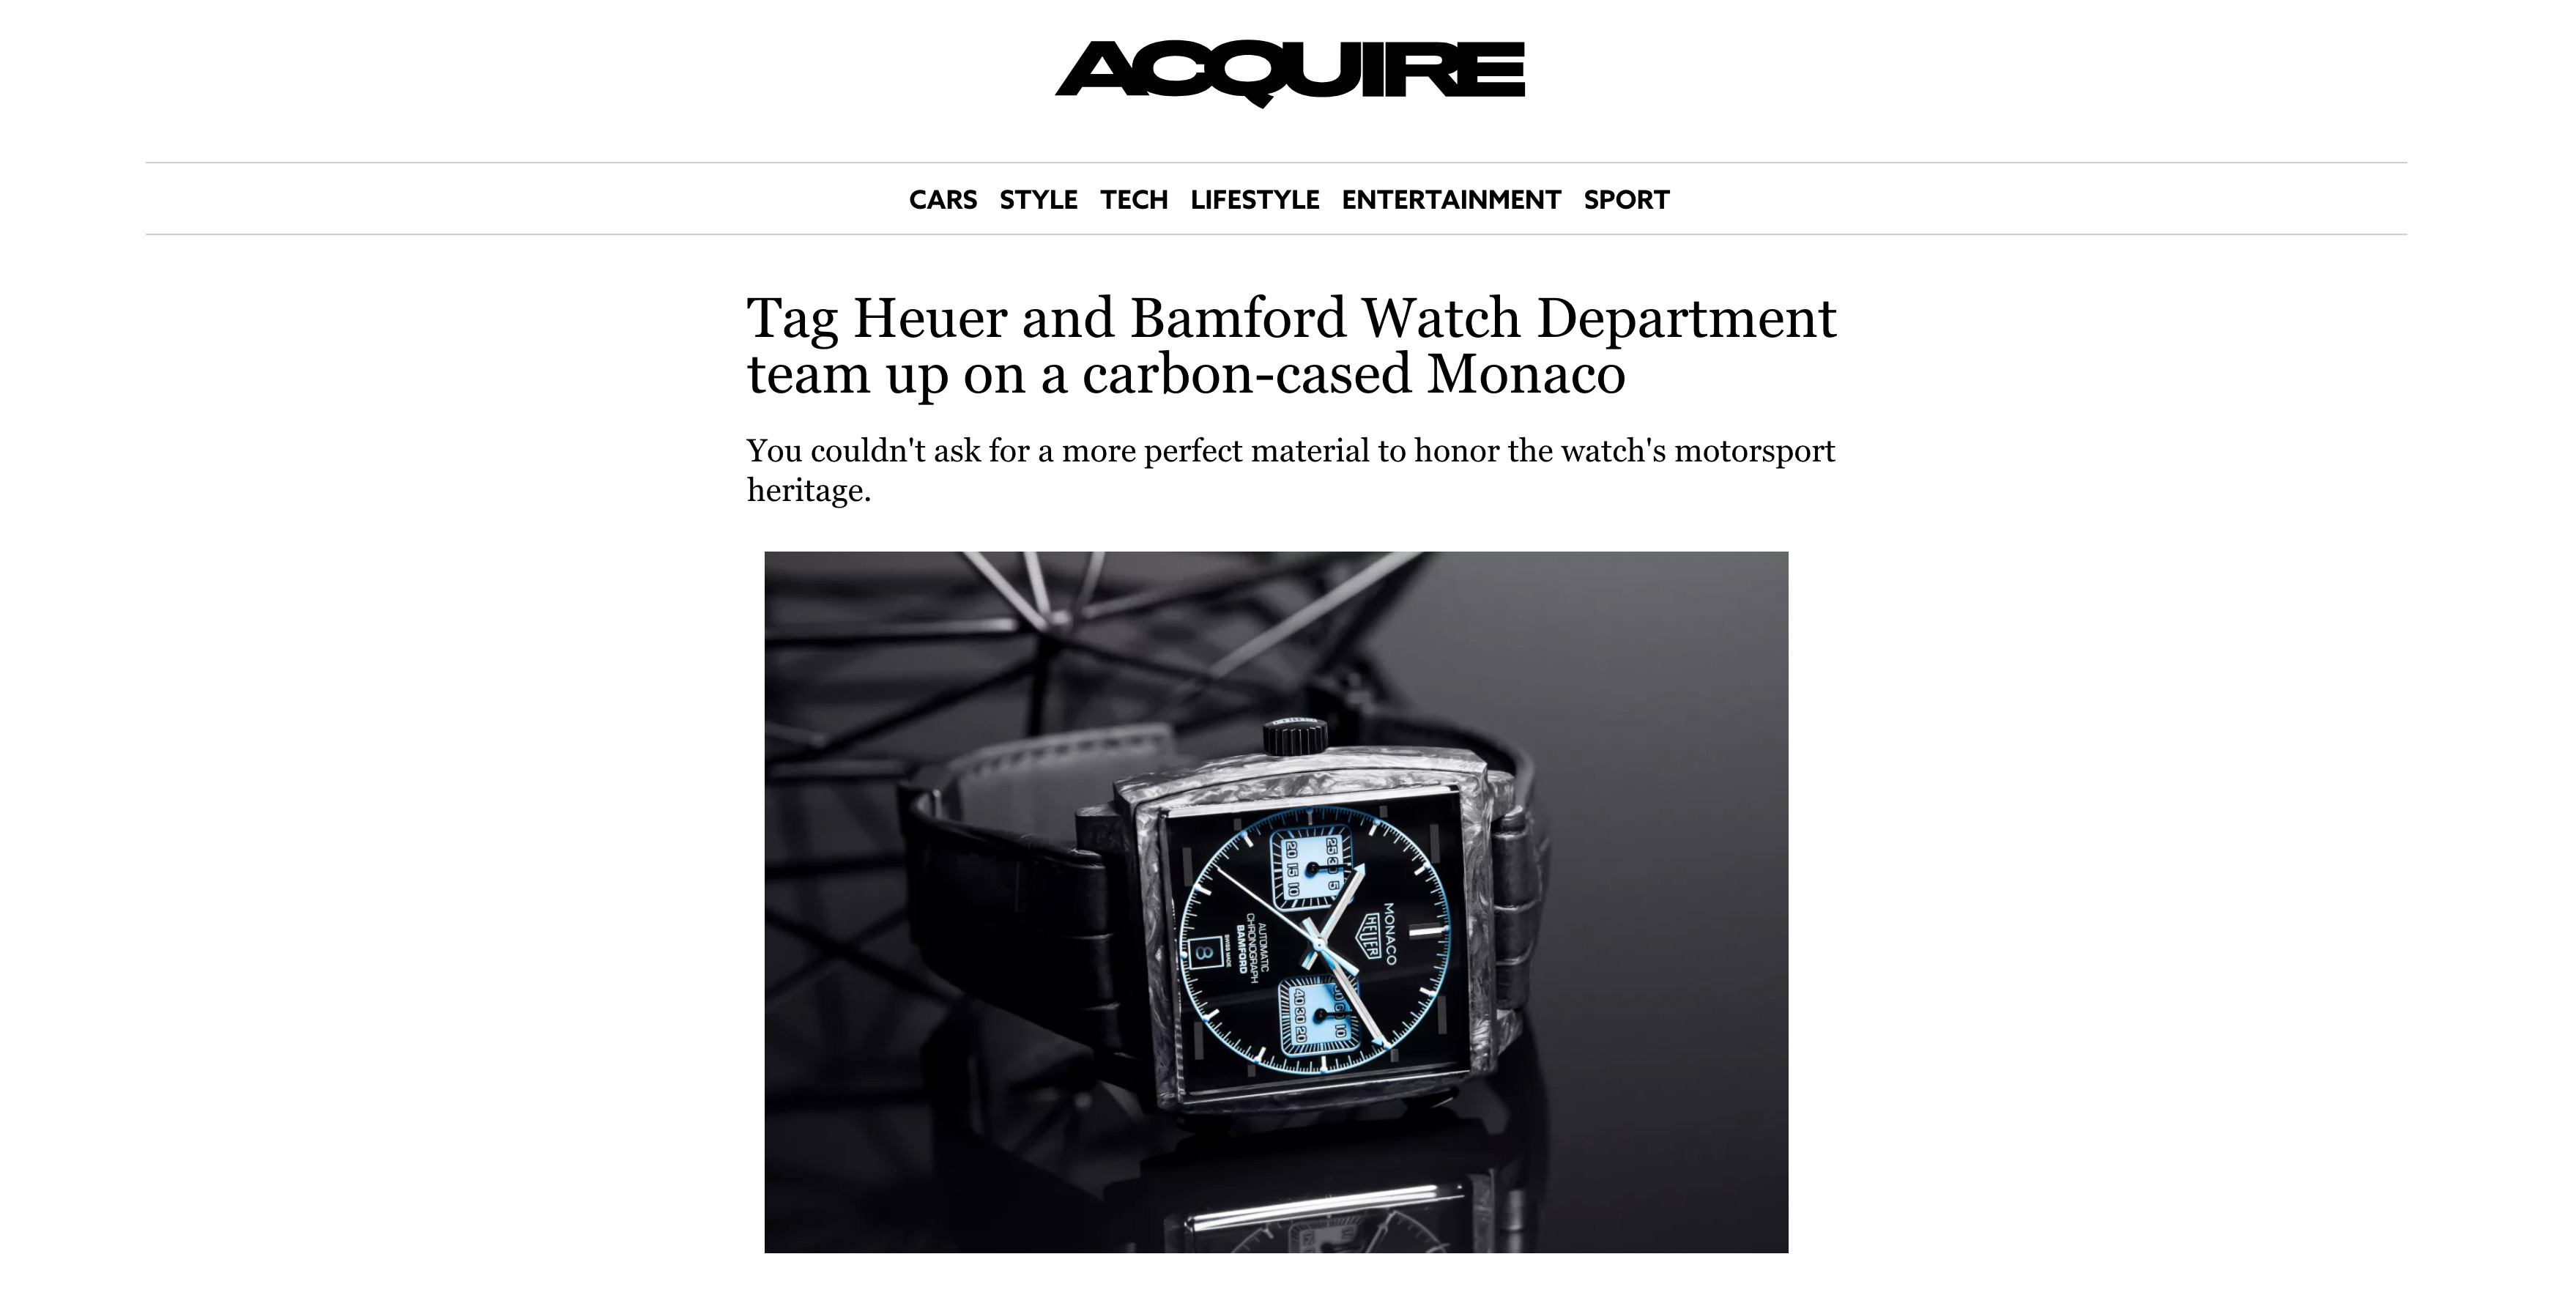 ACQUIRE: Tag Heuer and Bamford Watch Department team up on a carbon